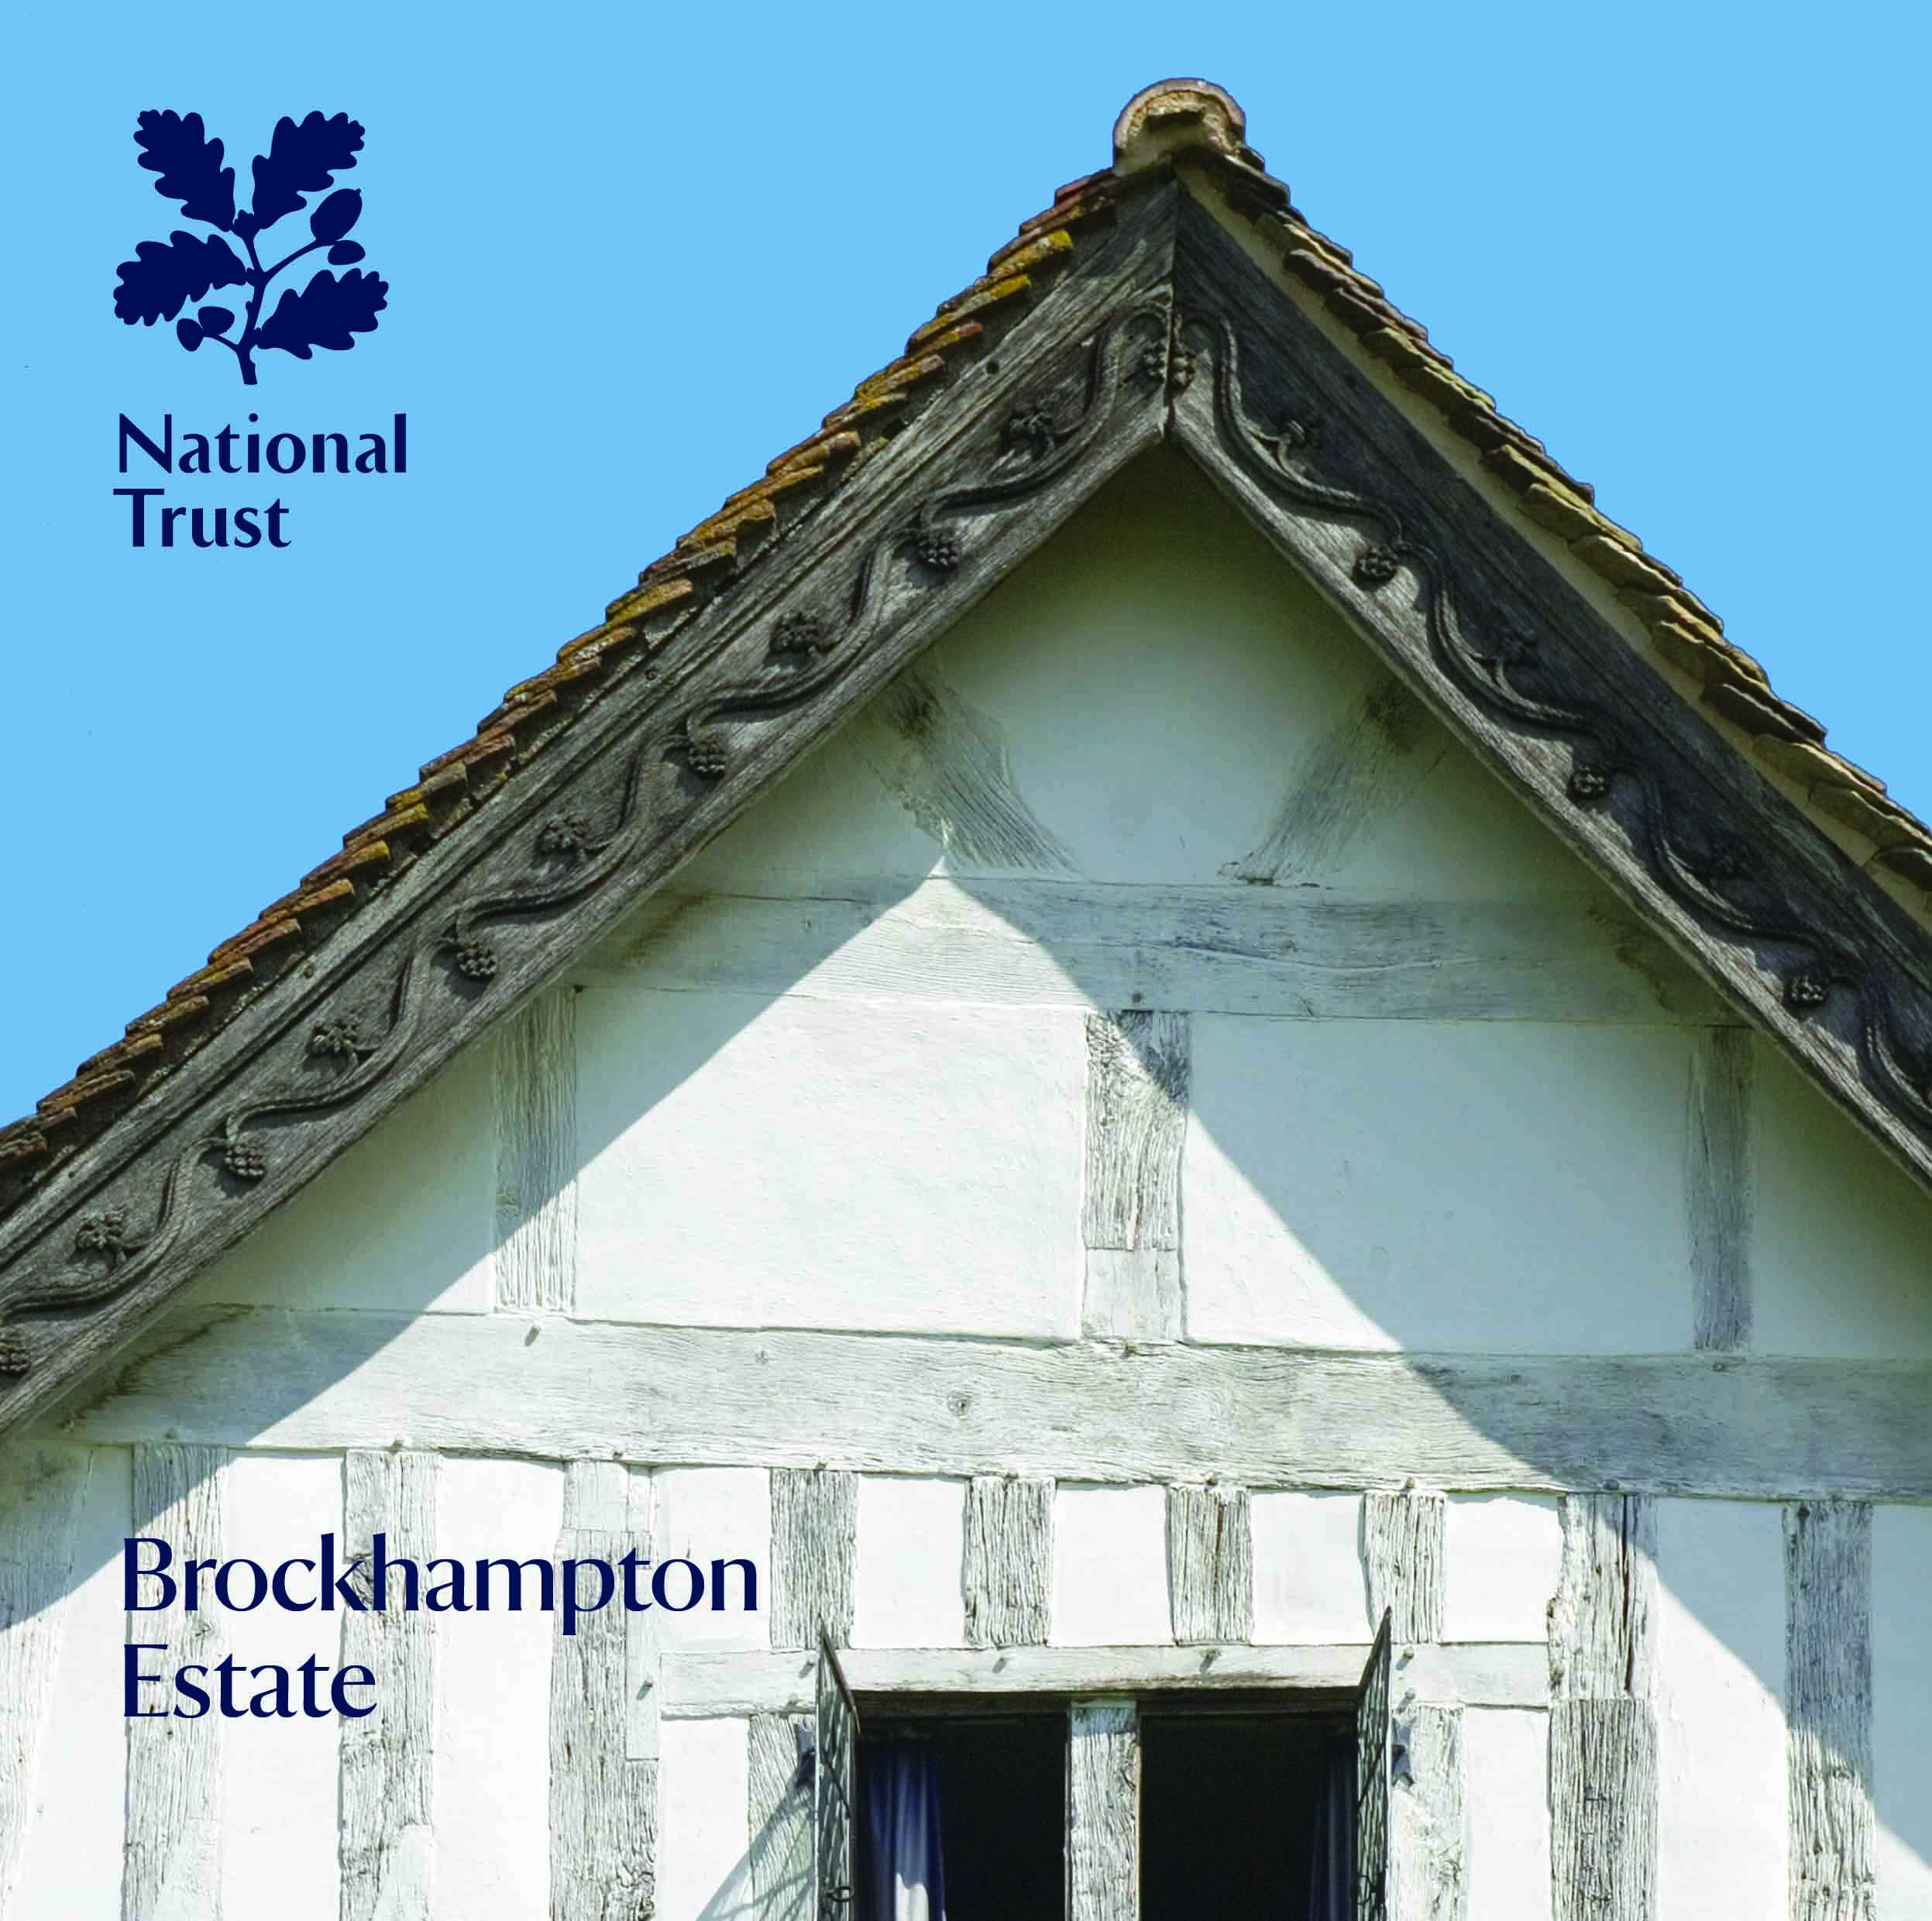 Brockhampton Estate